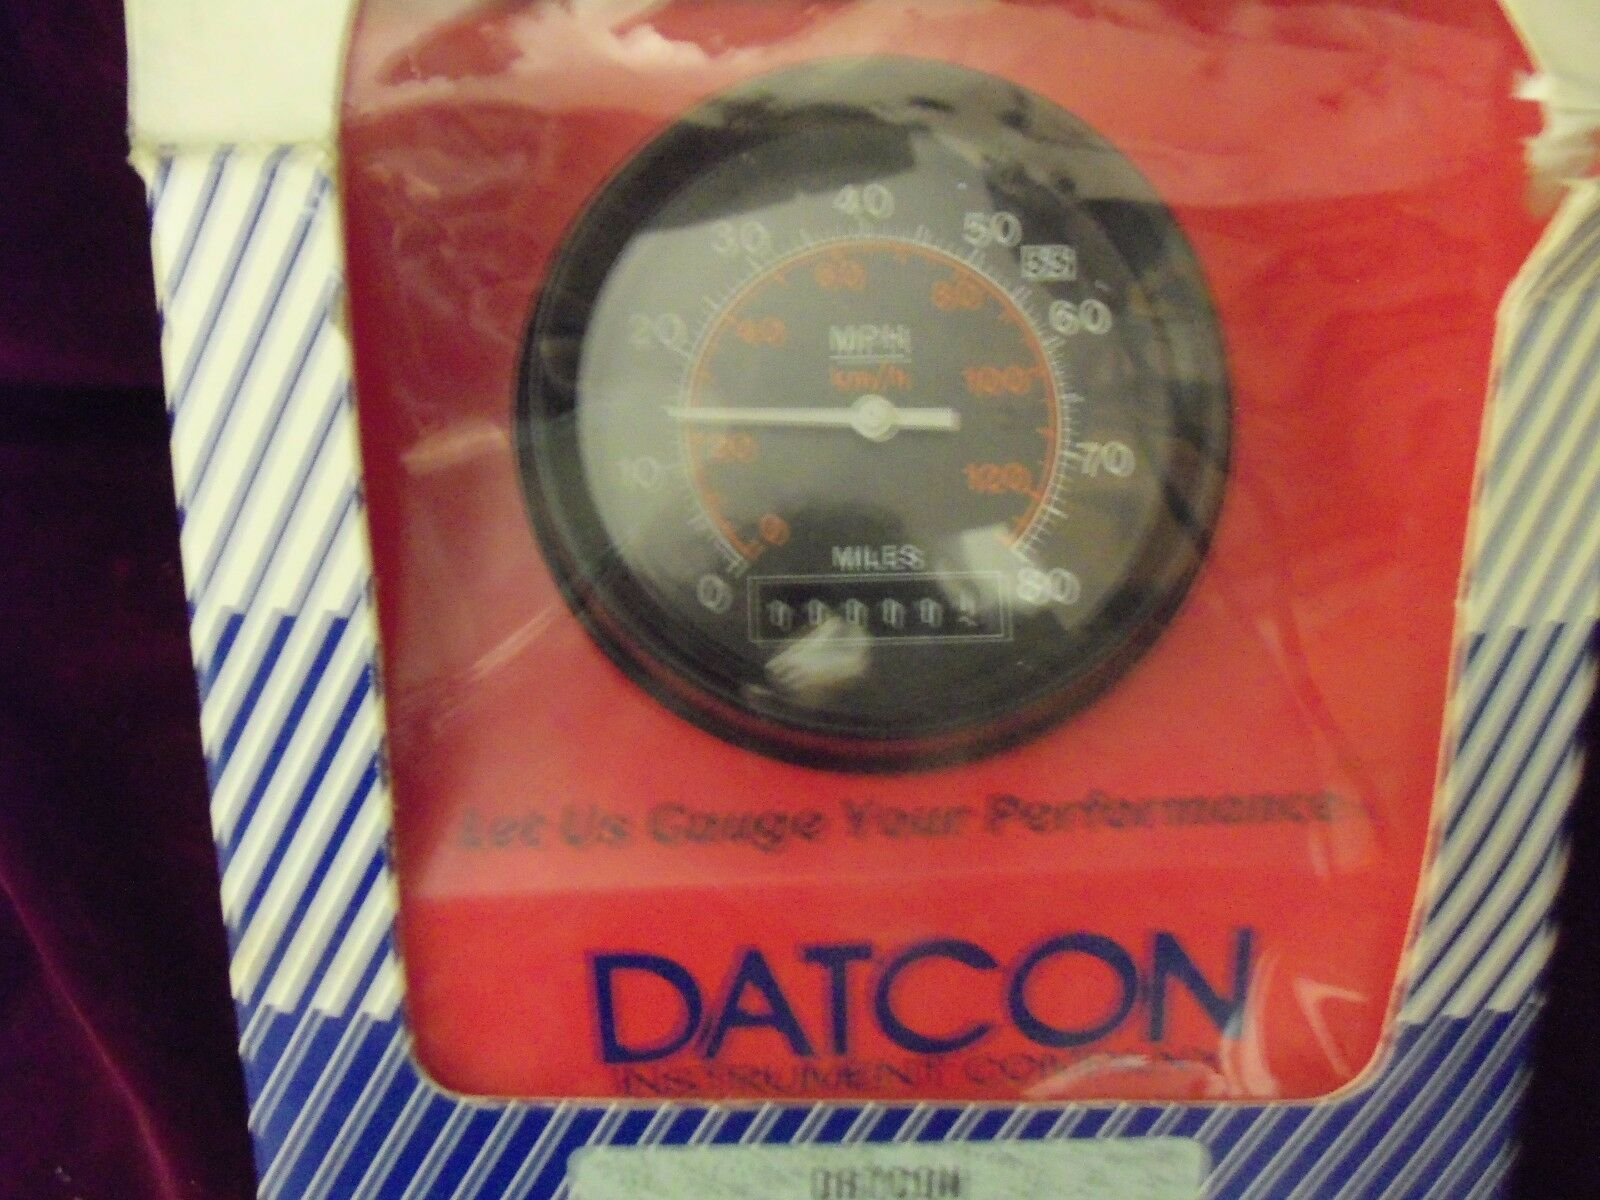 datcon speedometer odometer speedo 24 volt 71927 03 86 semi gauge  norton secured powered by verisign